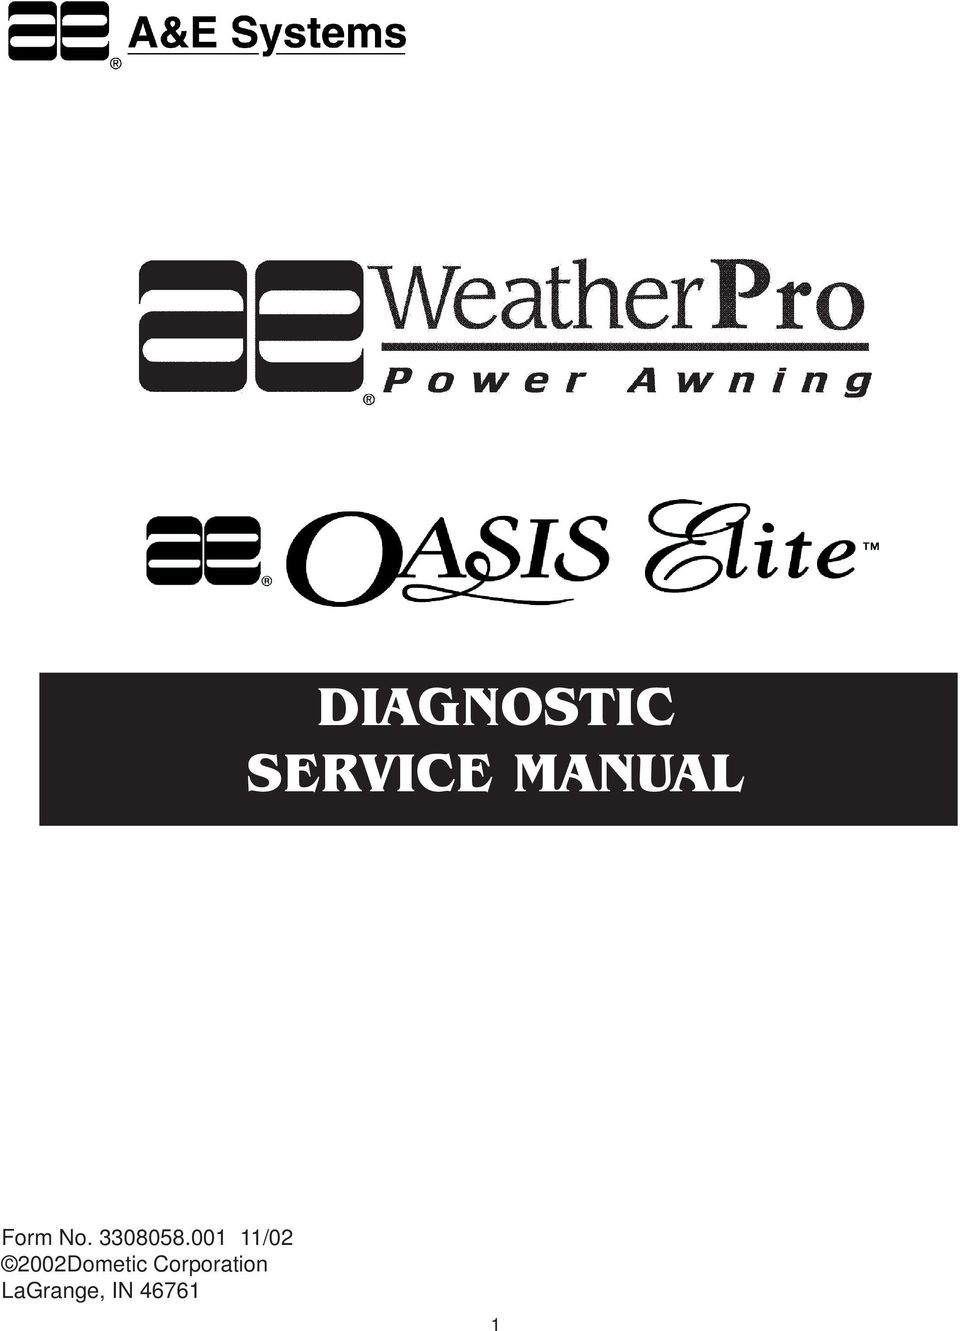 Diagnostic service manual pdf.